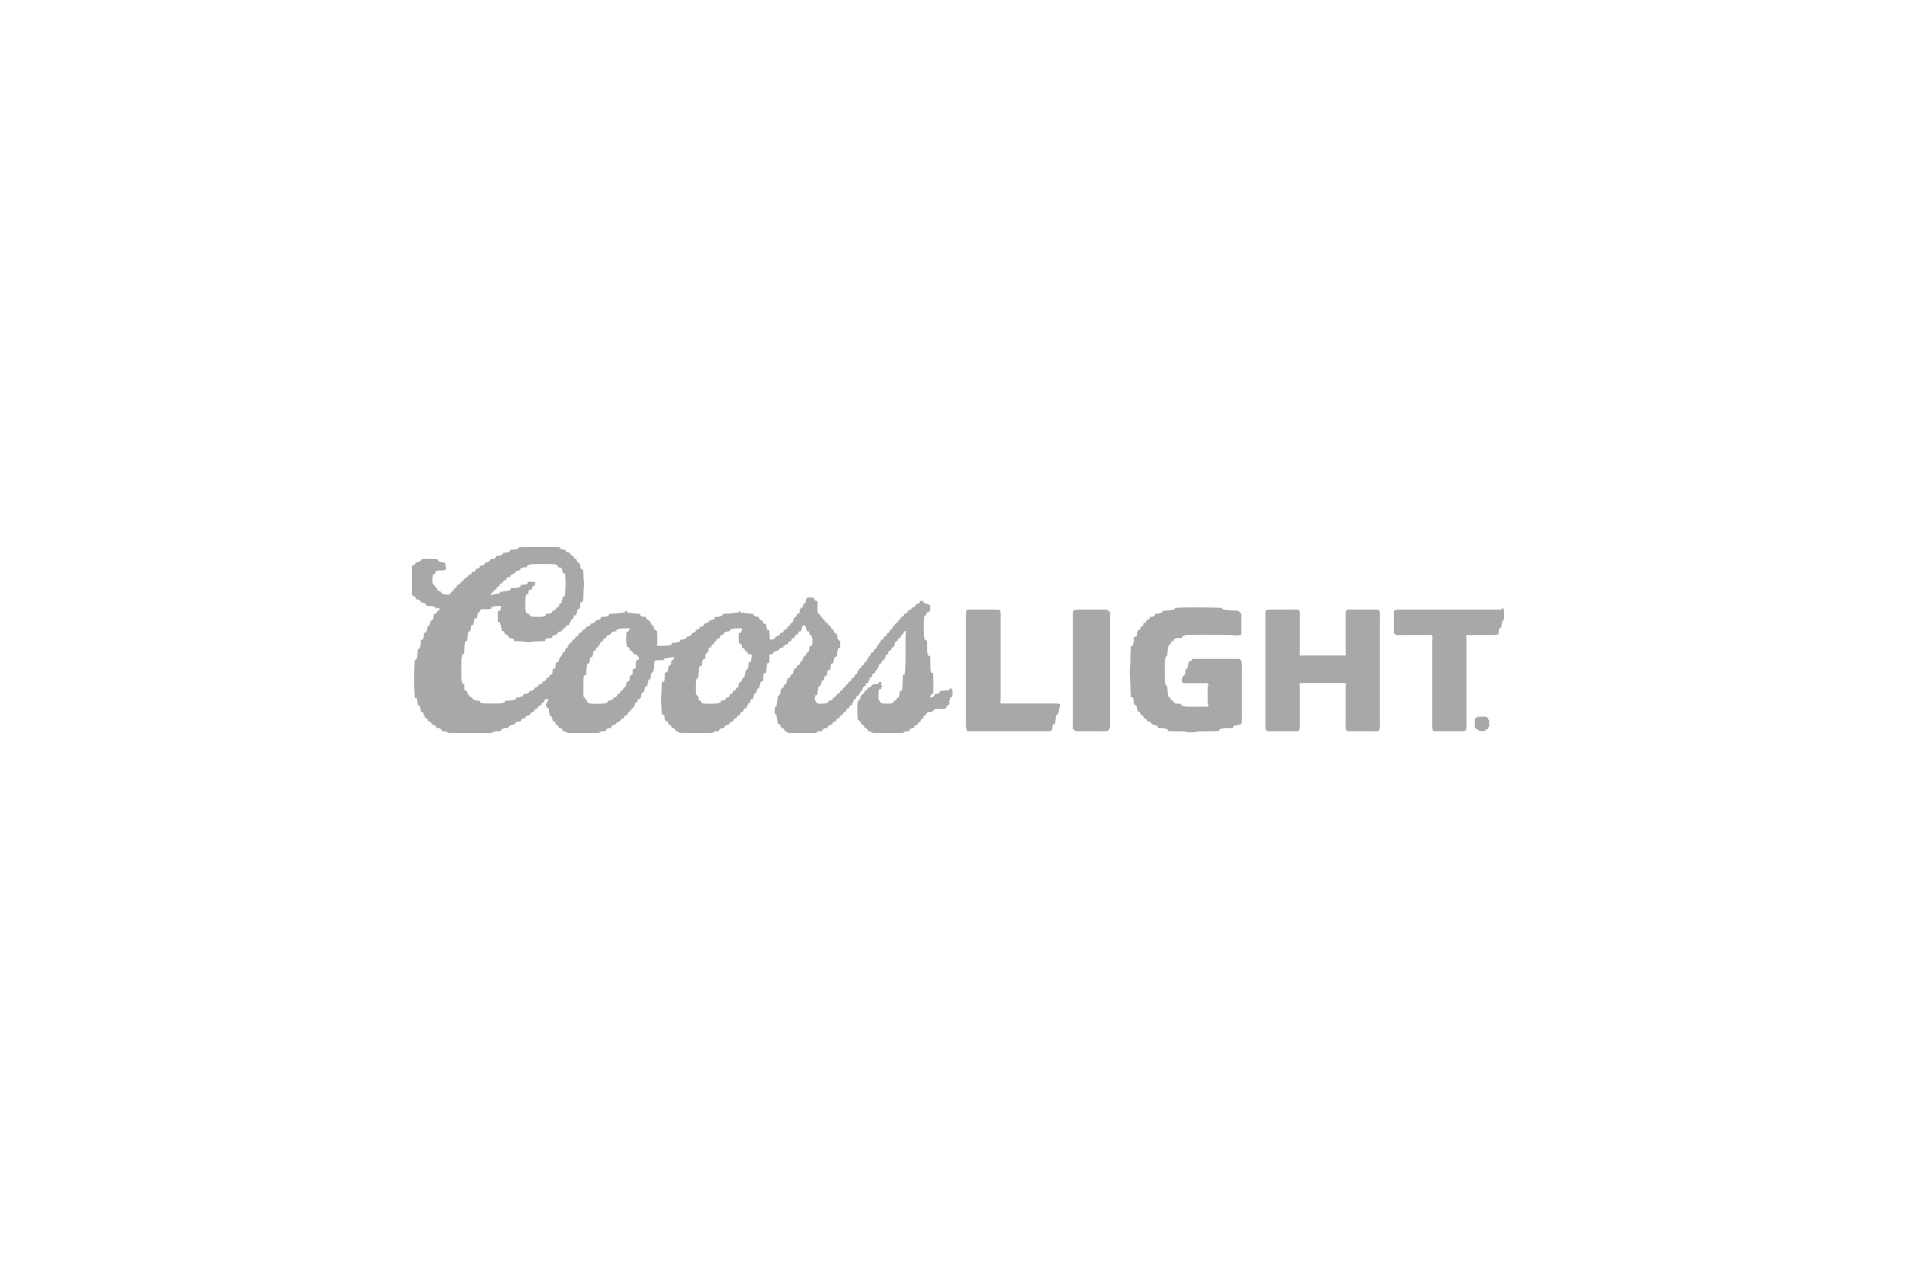 coors light logo grey